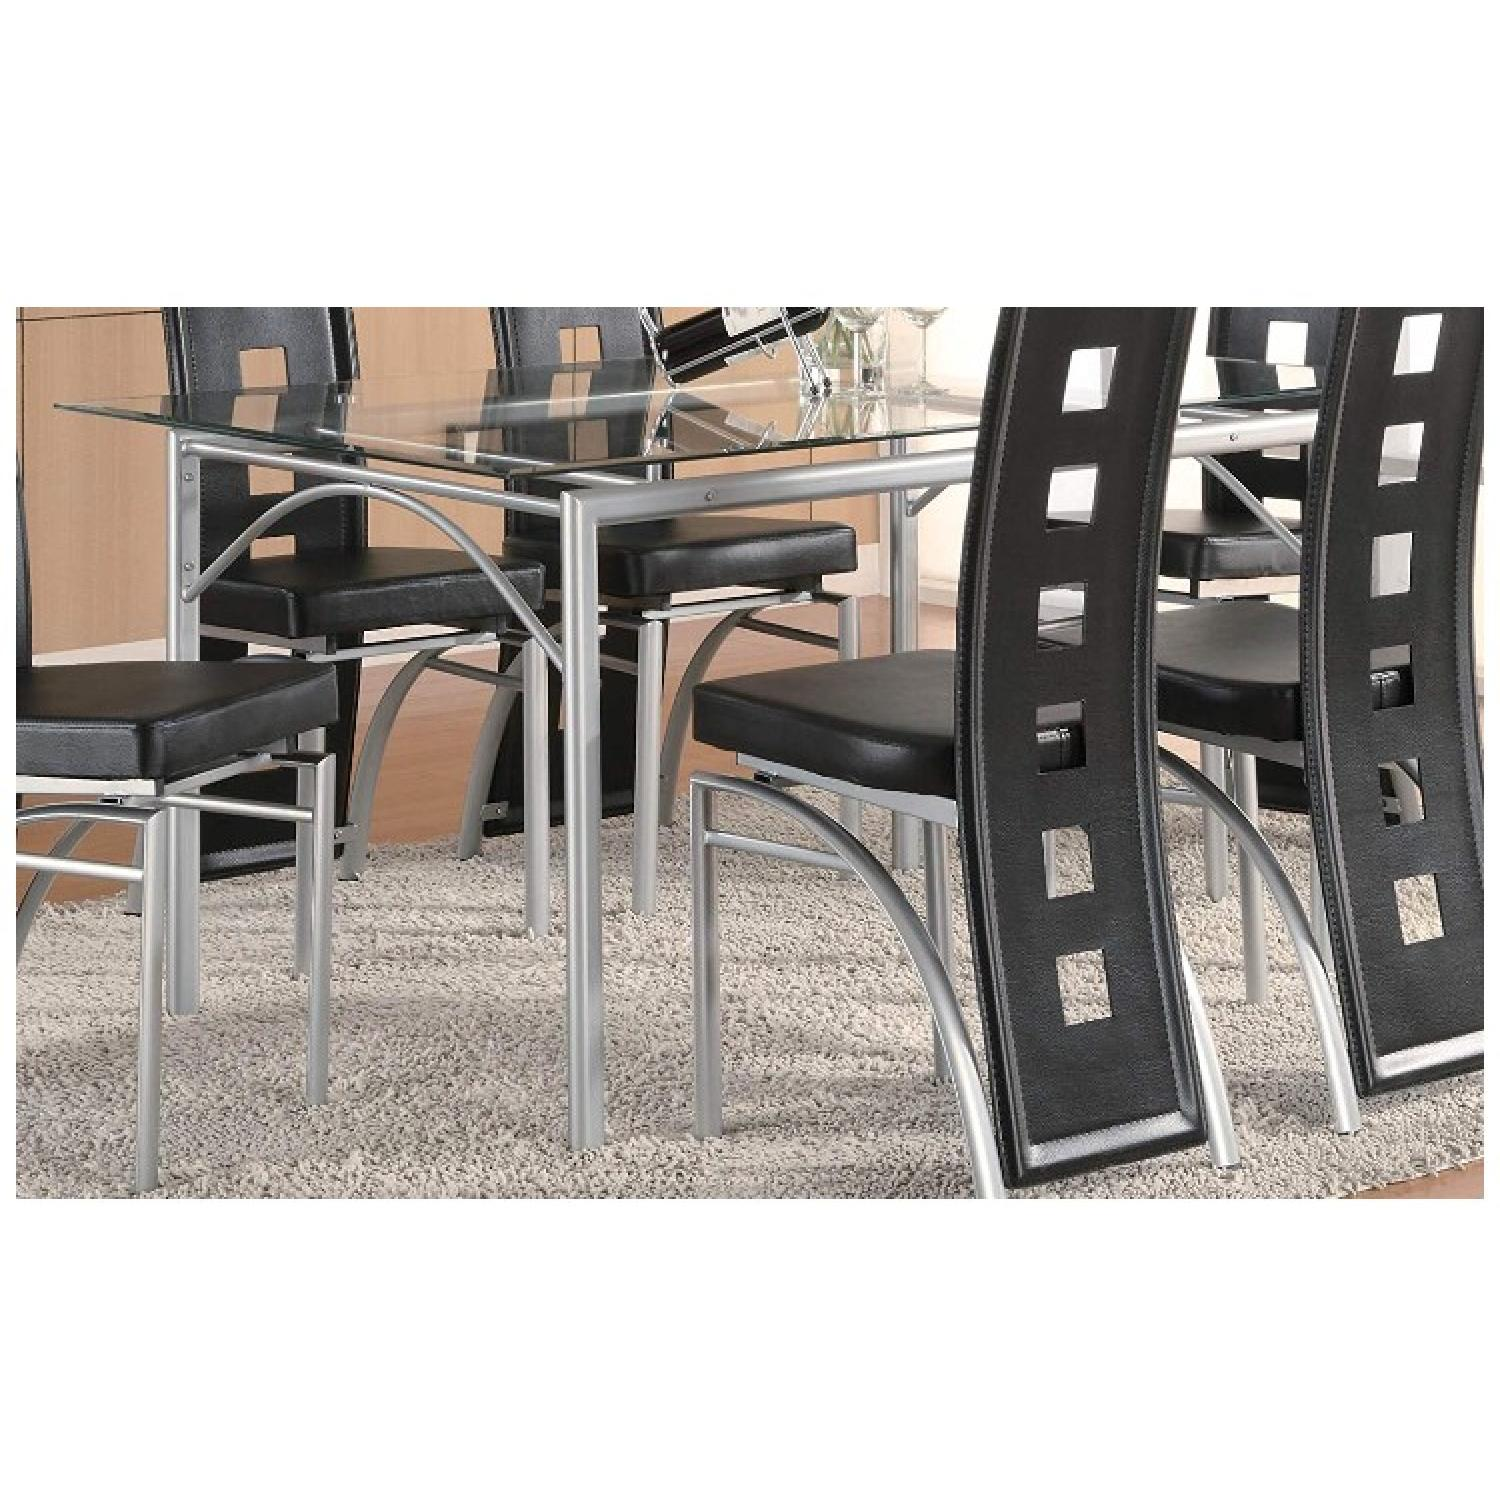 Coaster Glass Top Dining Table w/ Matte Silver Frame - image-1